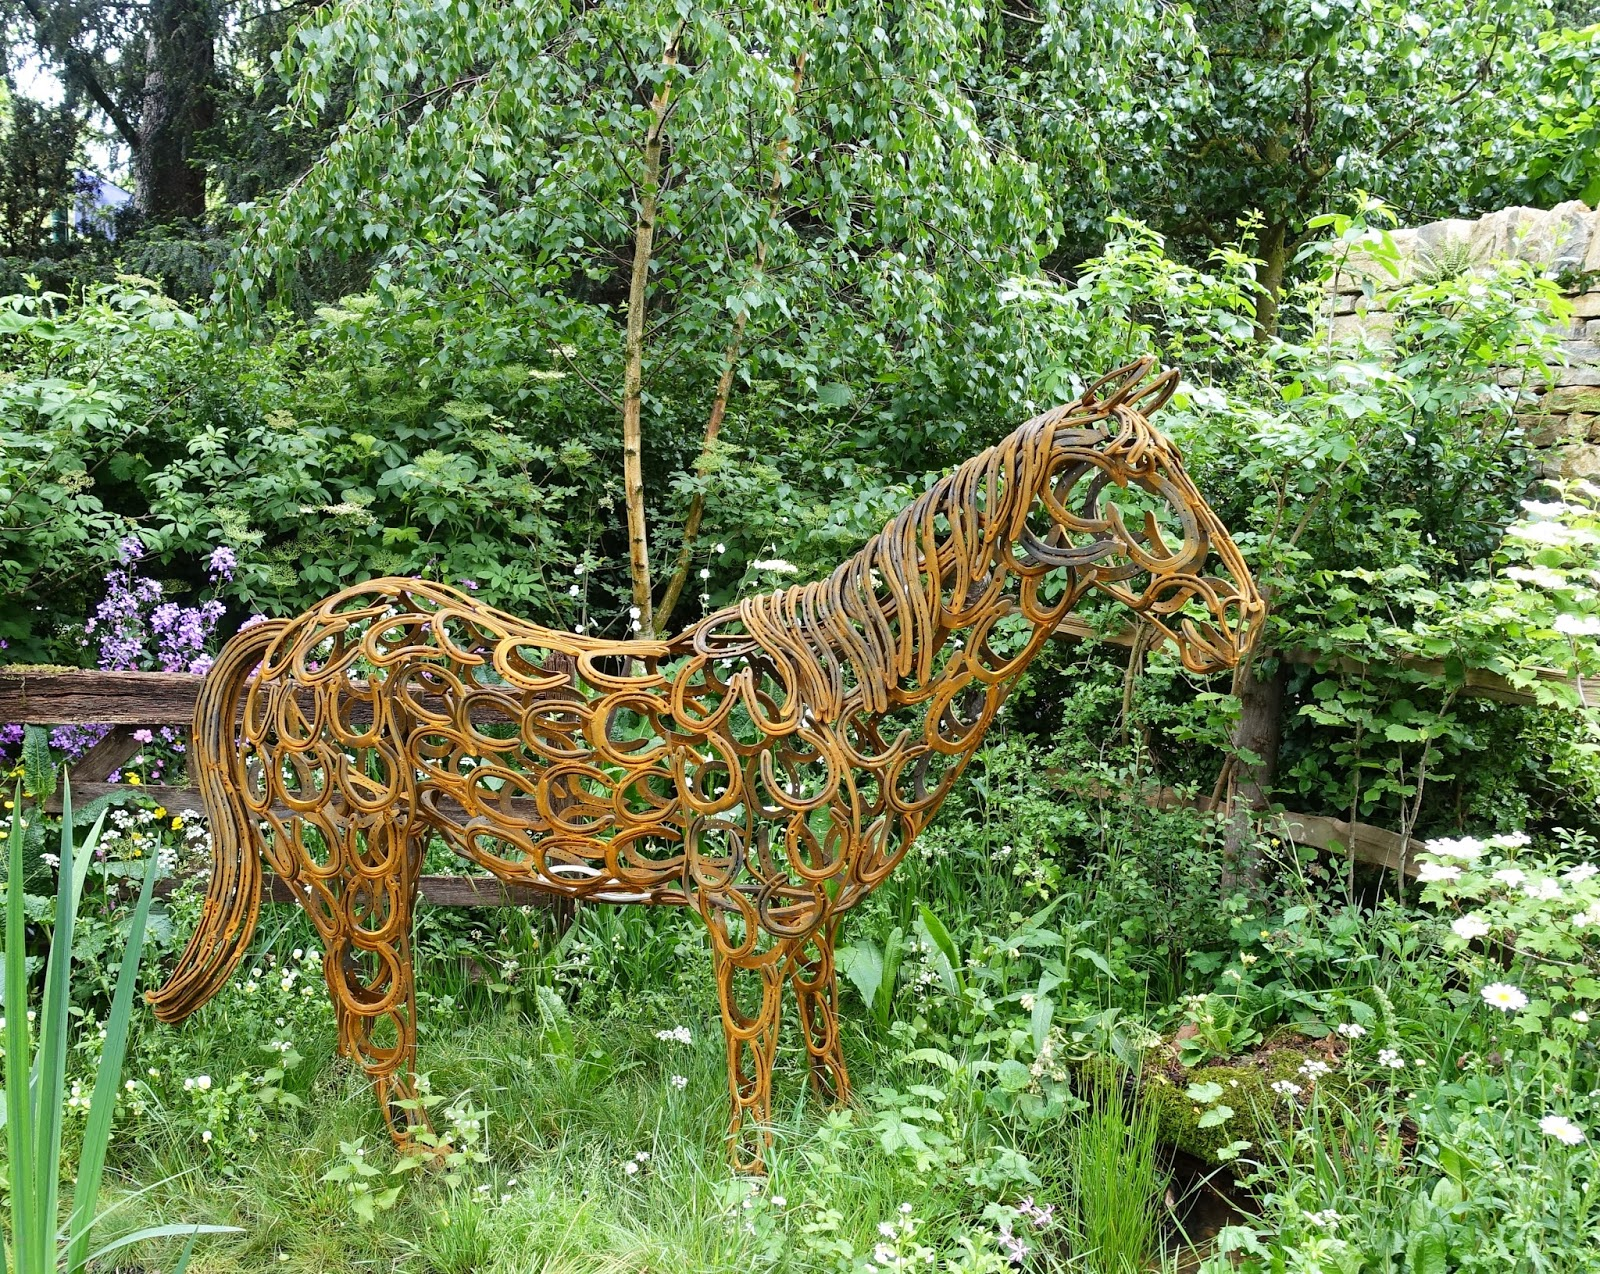 A horse made of horseshoes from an artisan garden, Chelsea Flower Show 2017